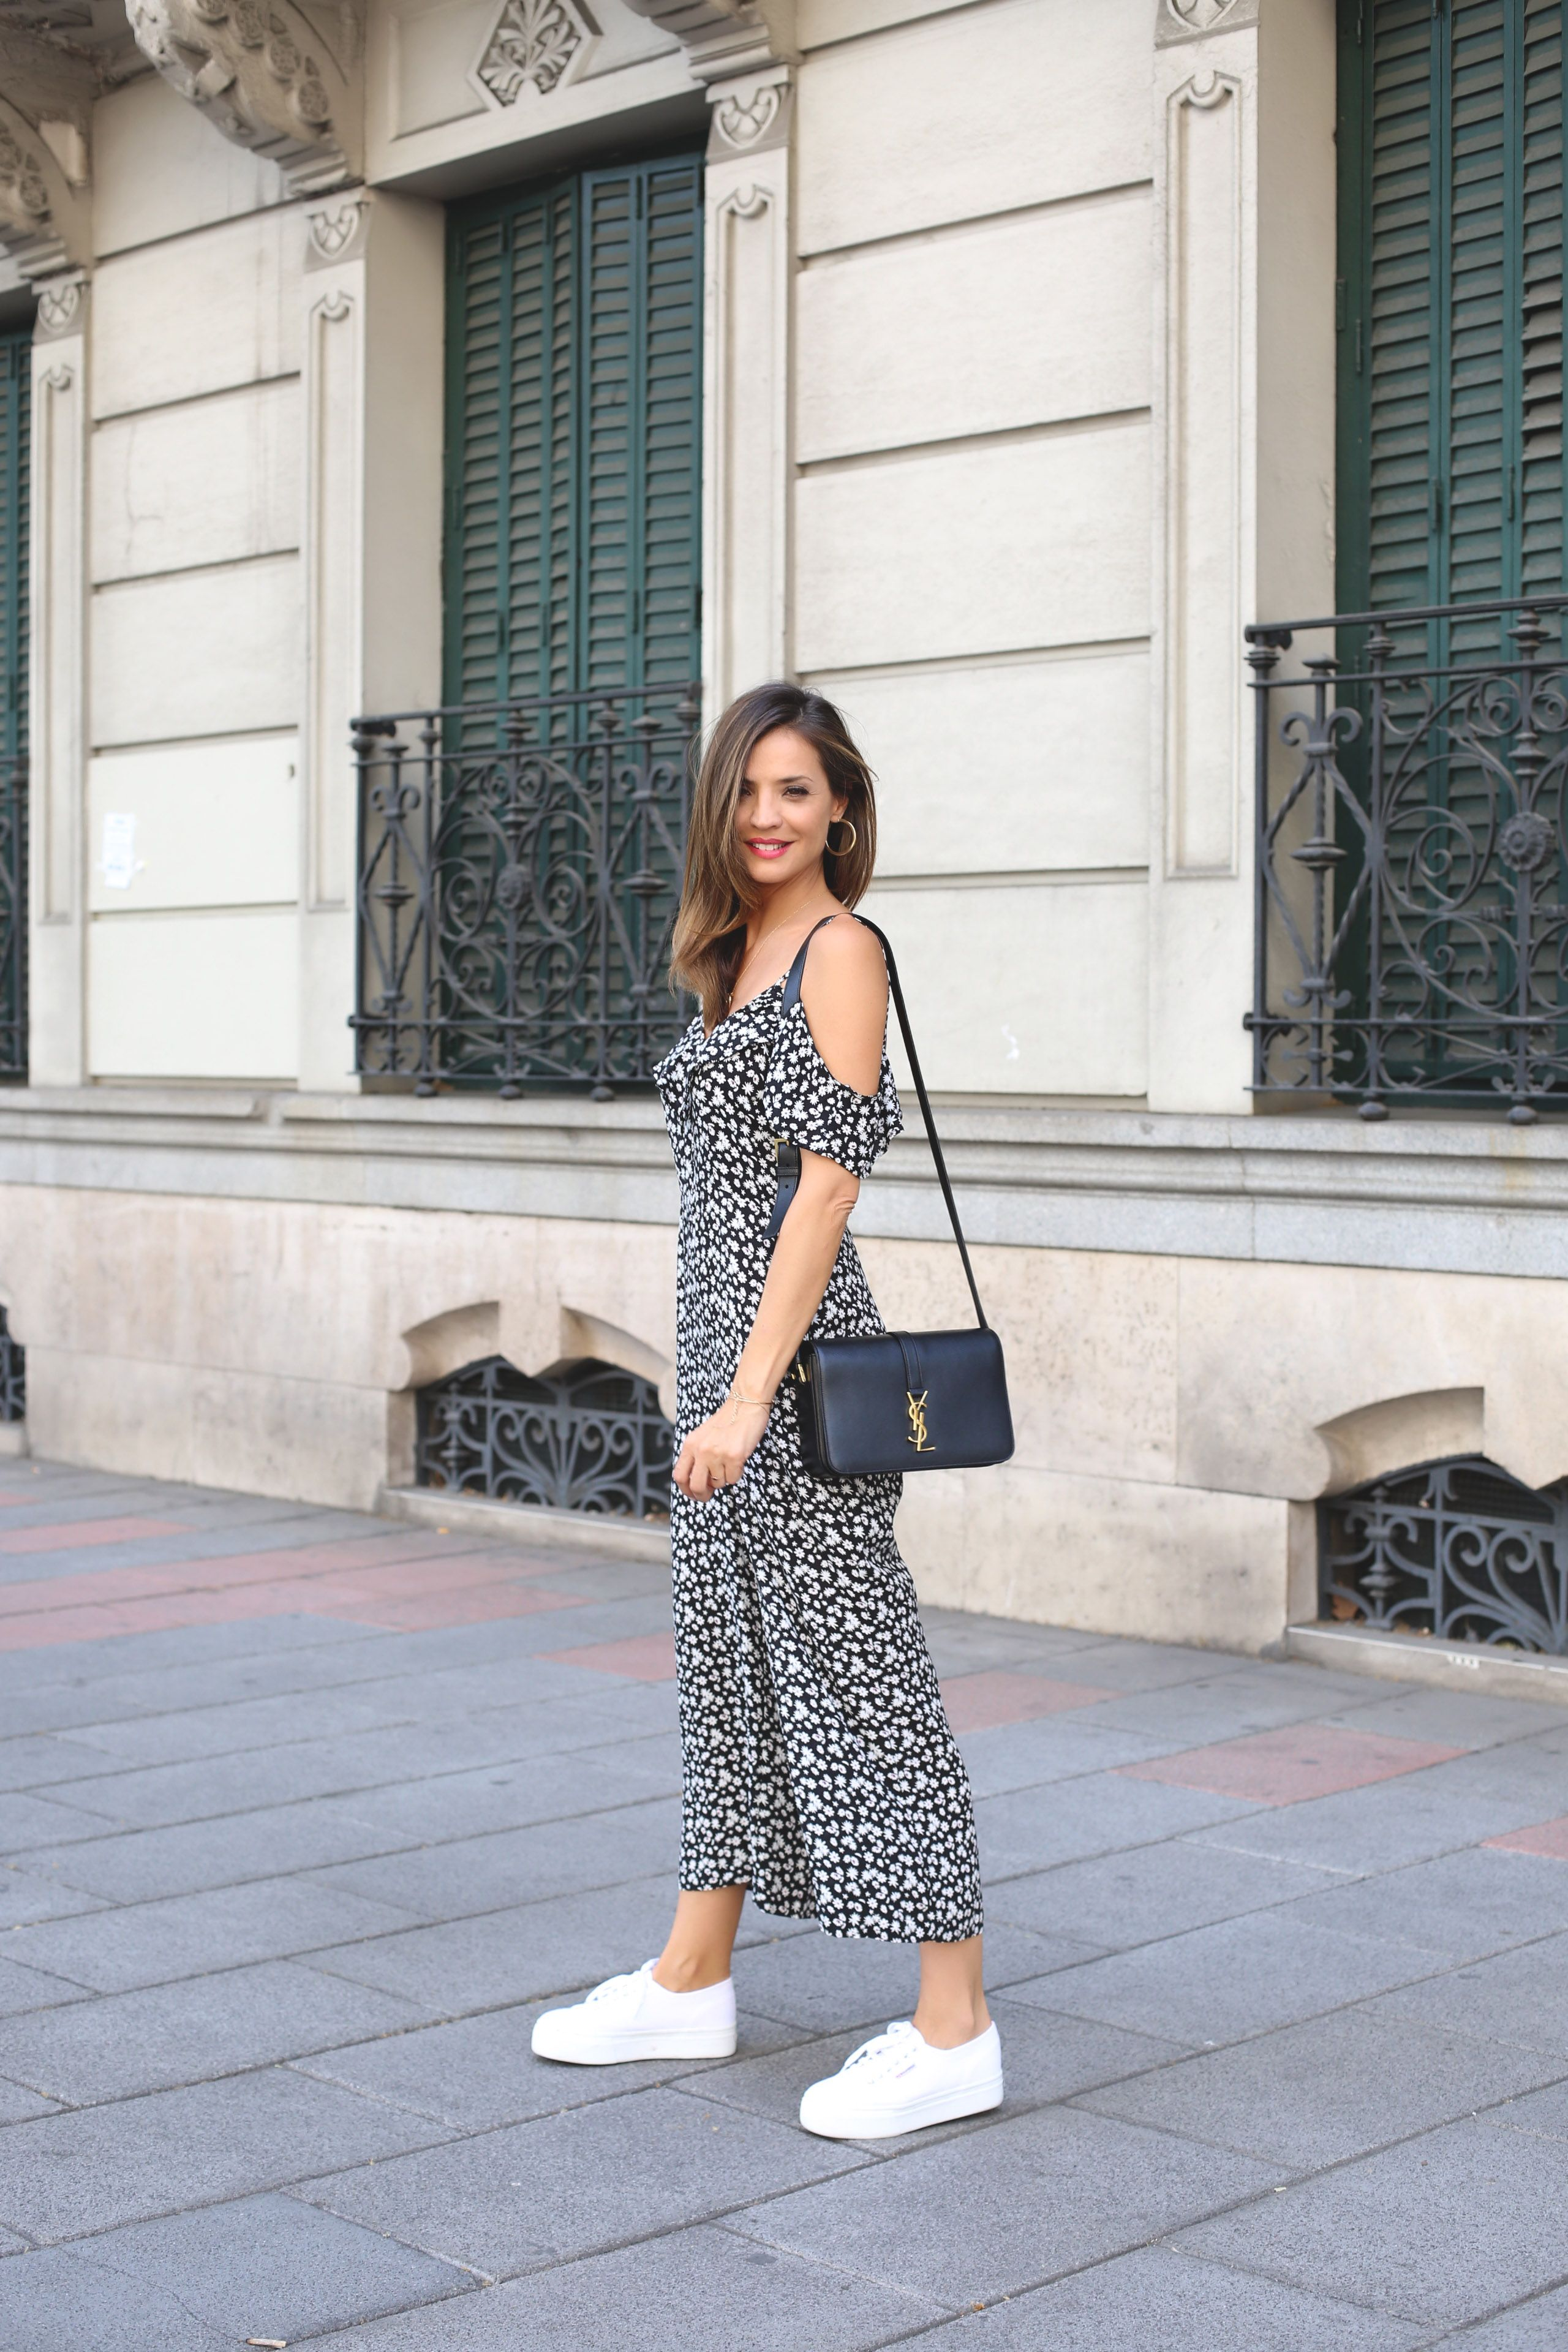 c1c319d1dd85 What to Wear to a Concert  12 Outfits That Aren t Cheesy or Cliché